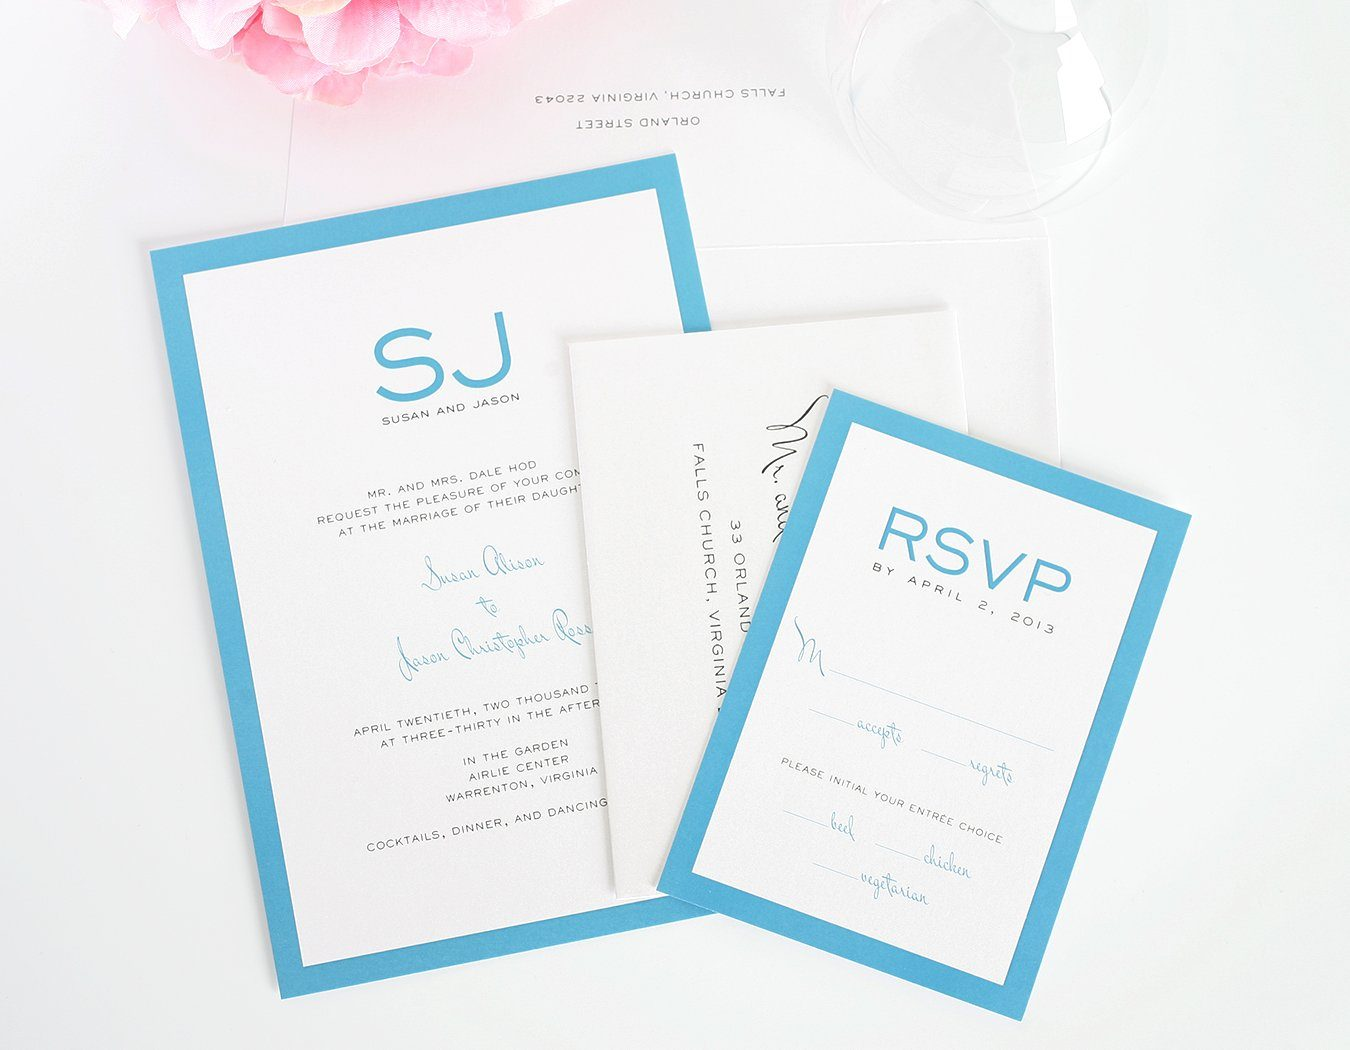 Wedding Invitation Addressing is an amazing ideas you had to choose for invitation design